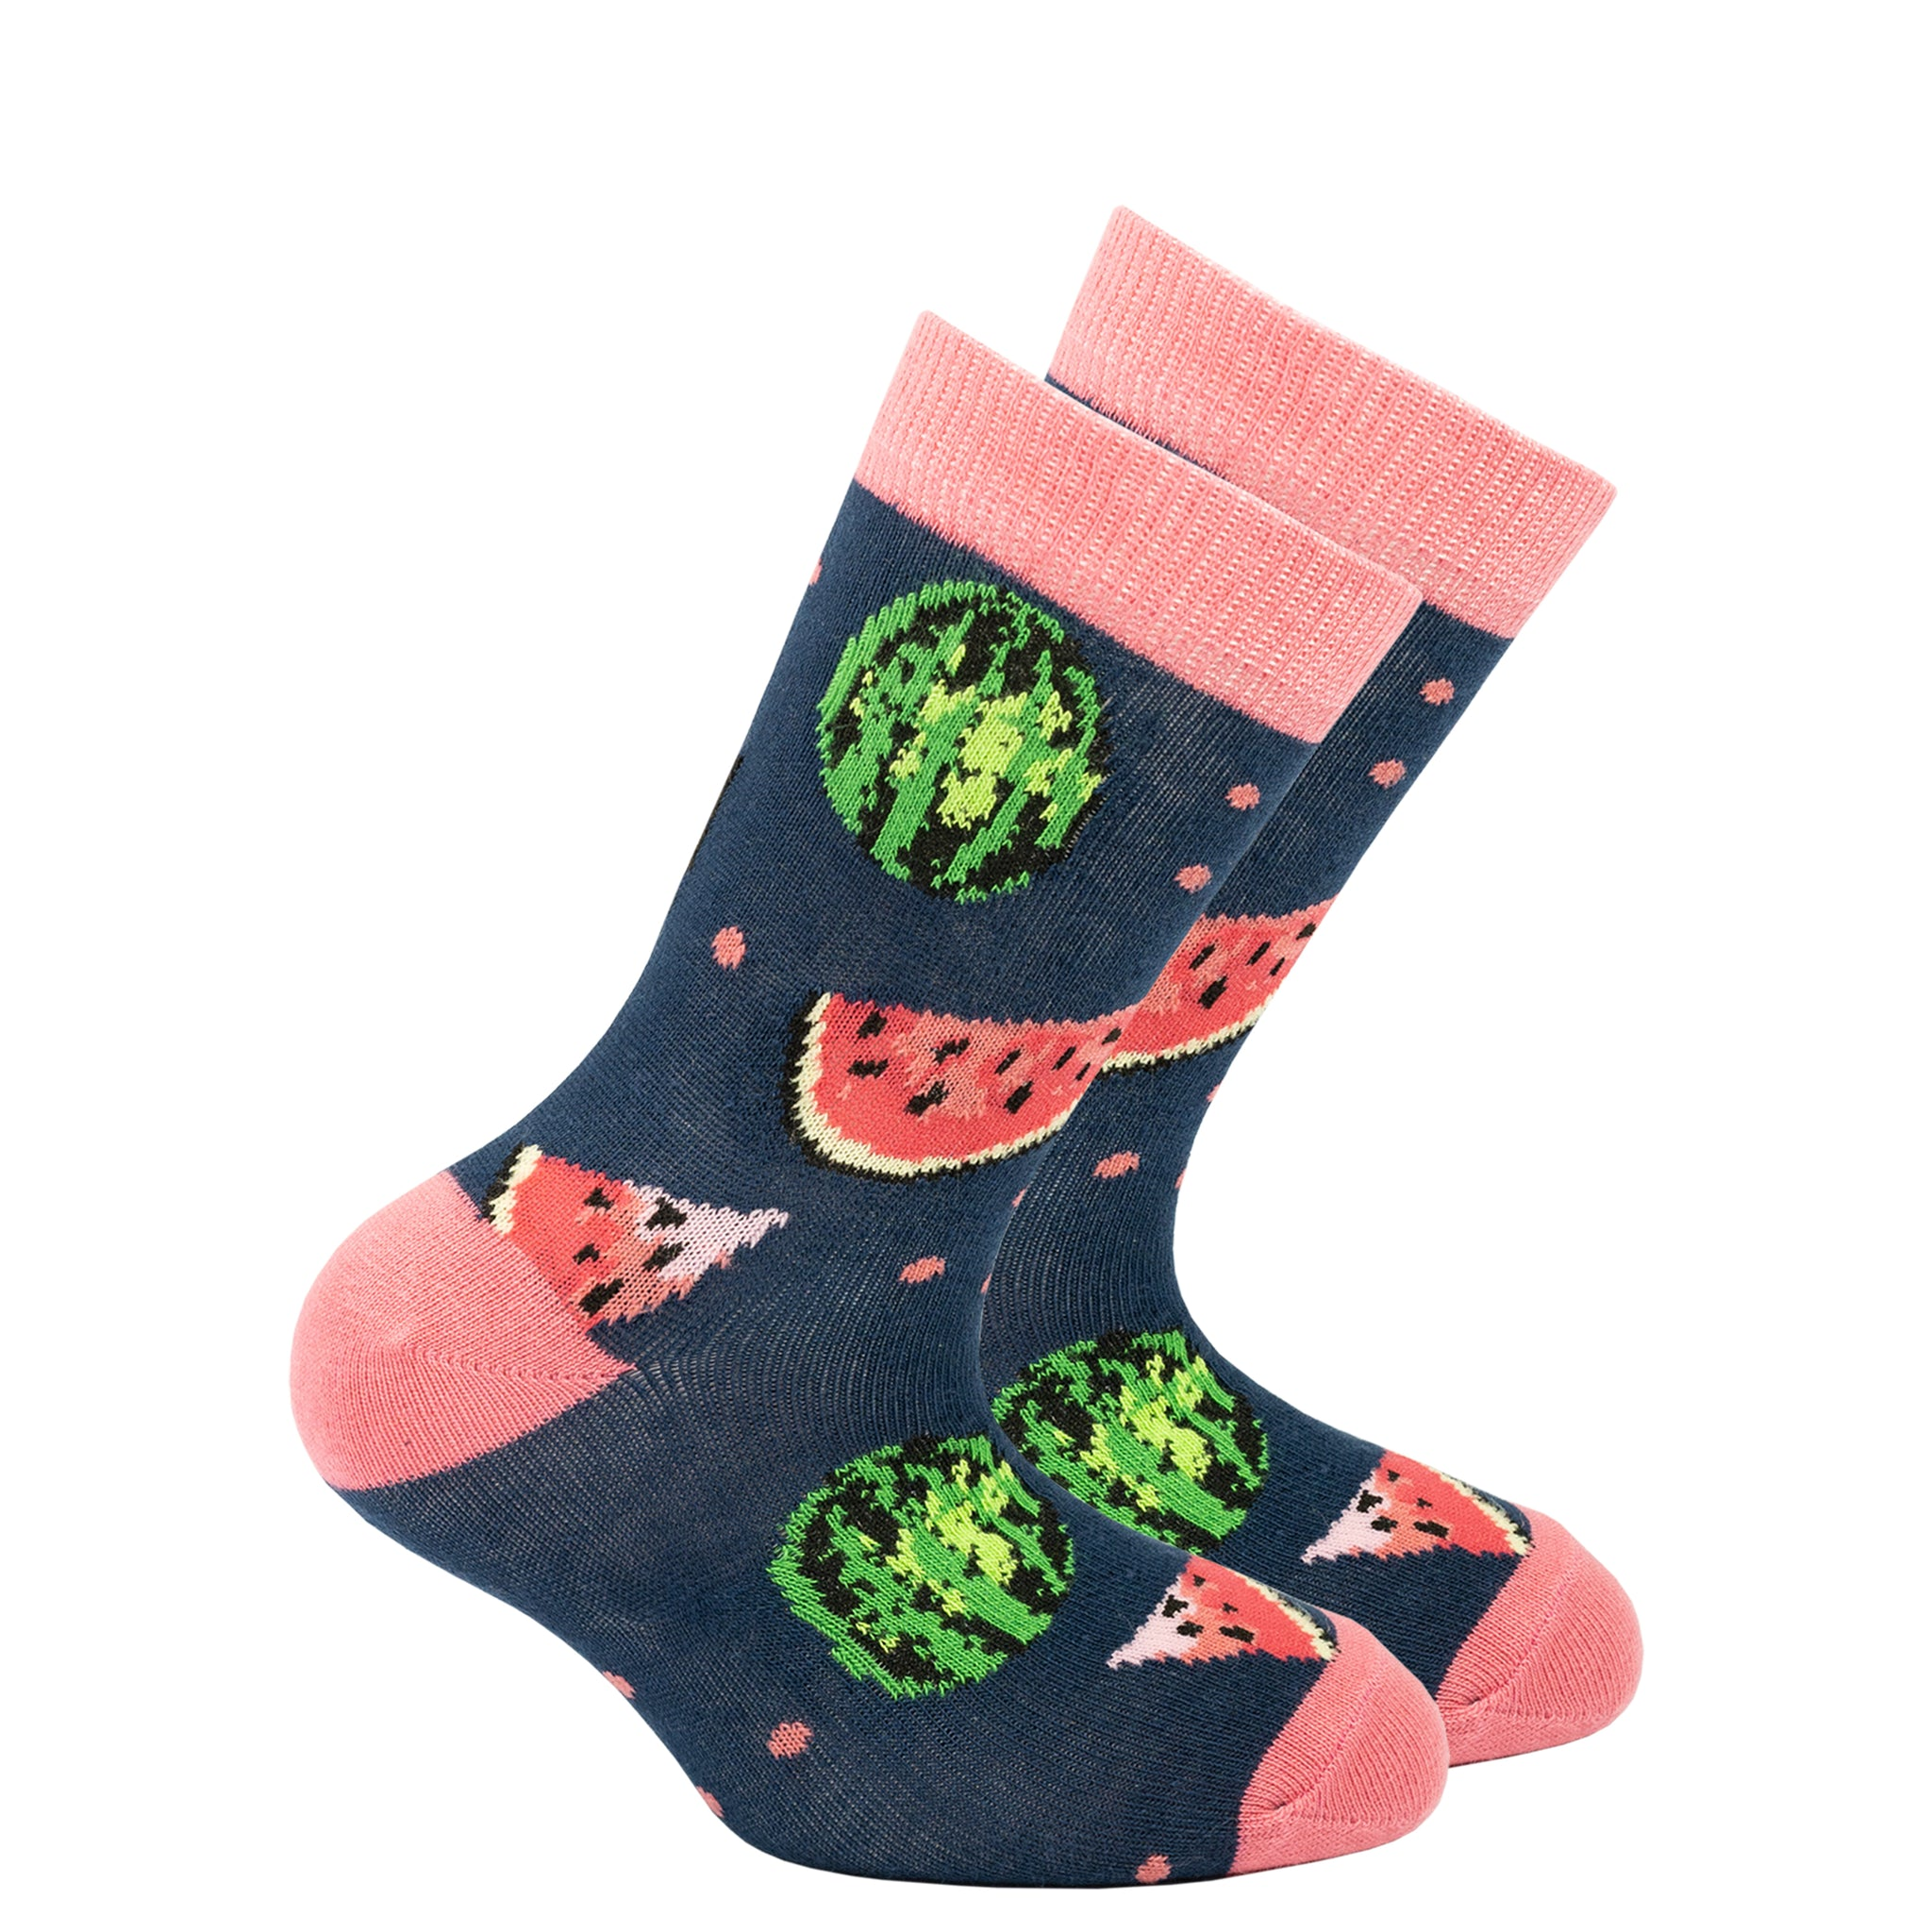 Kids Watermelon Socks navy and pink